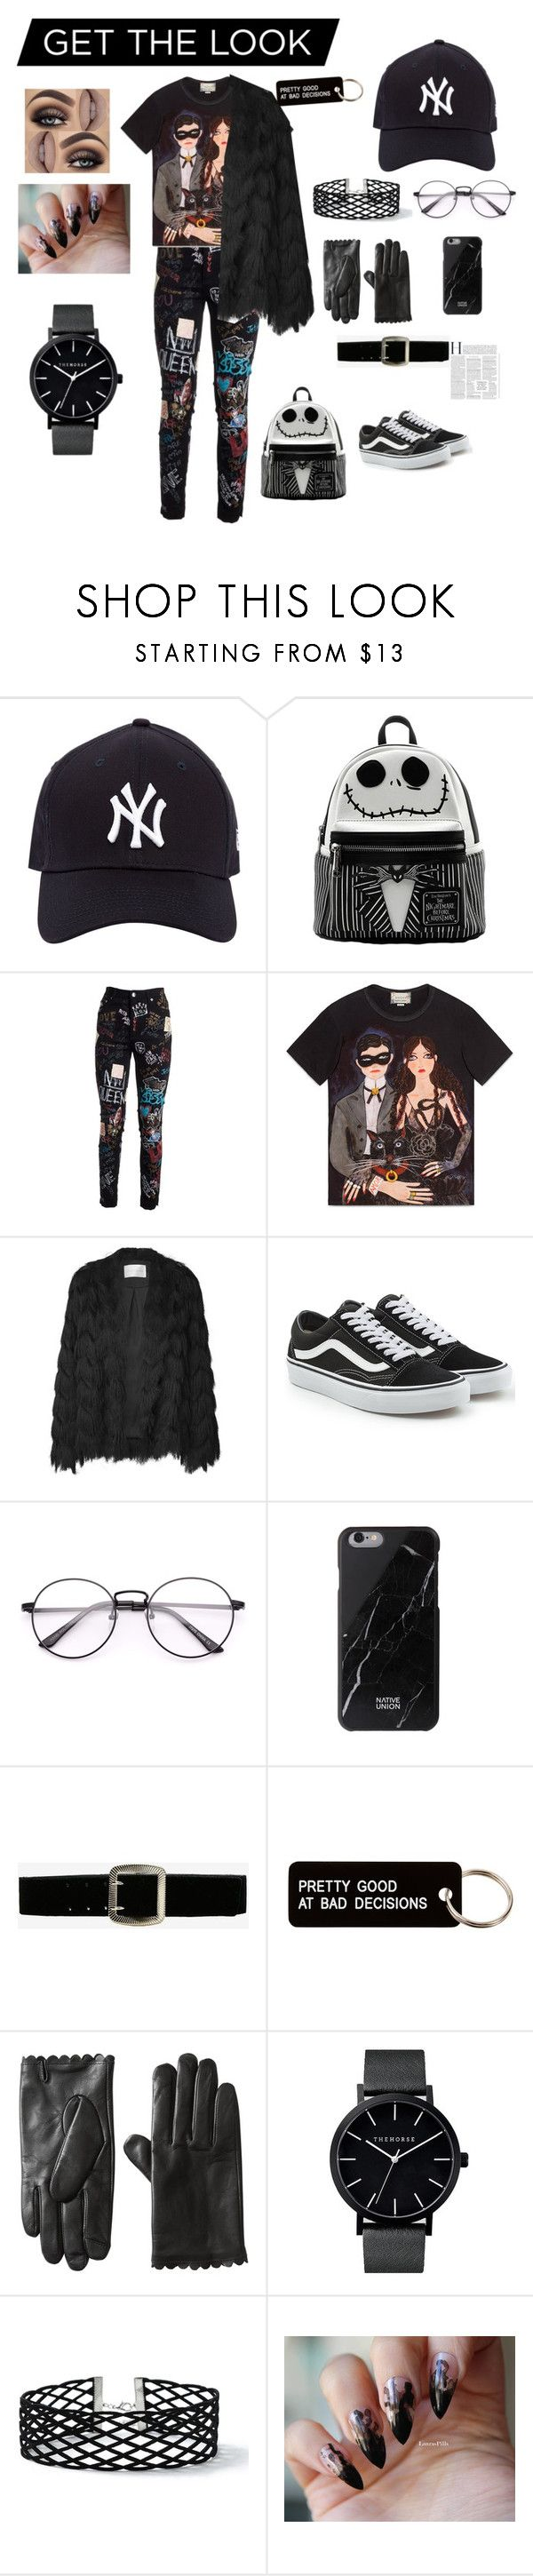 """🖤"" by imfitivy ❤ liked on Polyvore featuring New Era, Dolce&Gabbana, Gucci, Vans, Express, Various Projects, Miss Selfridge and outfit"